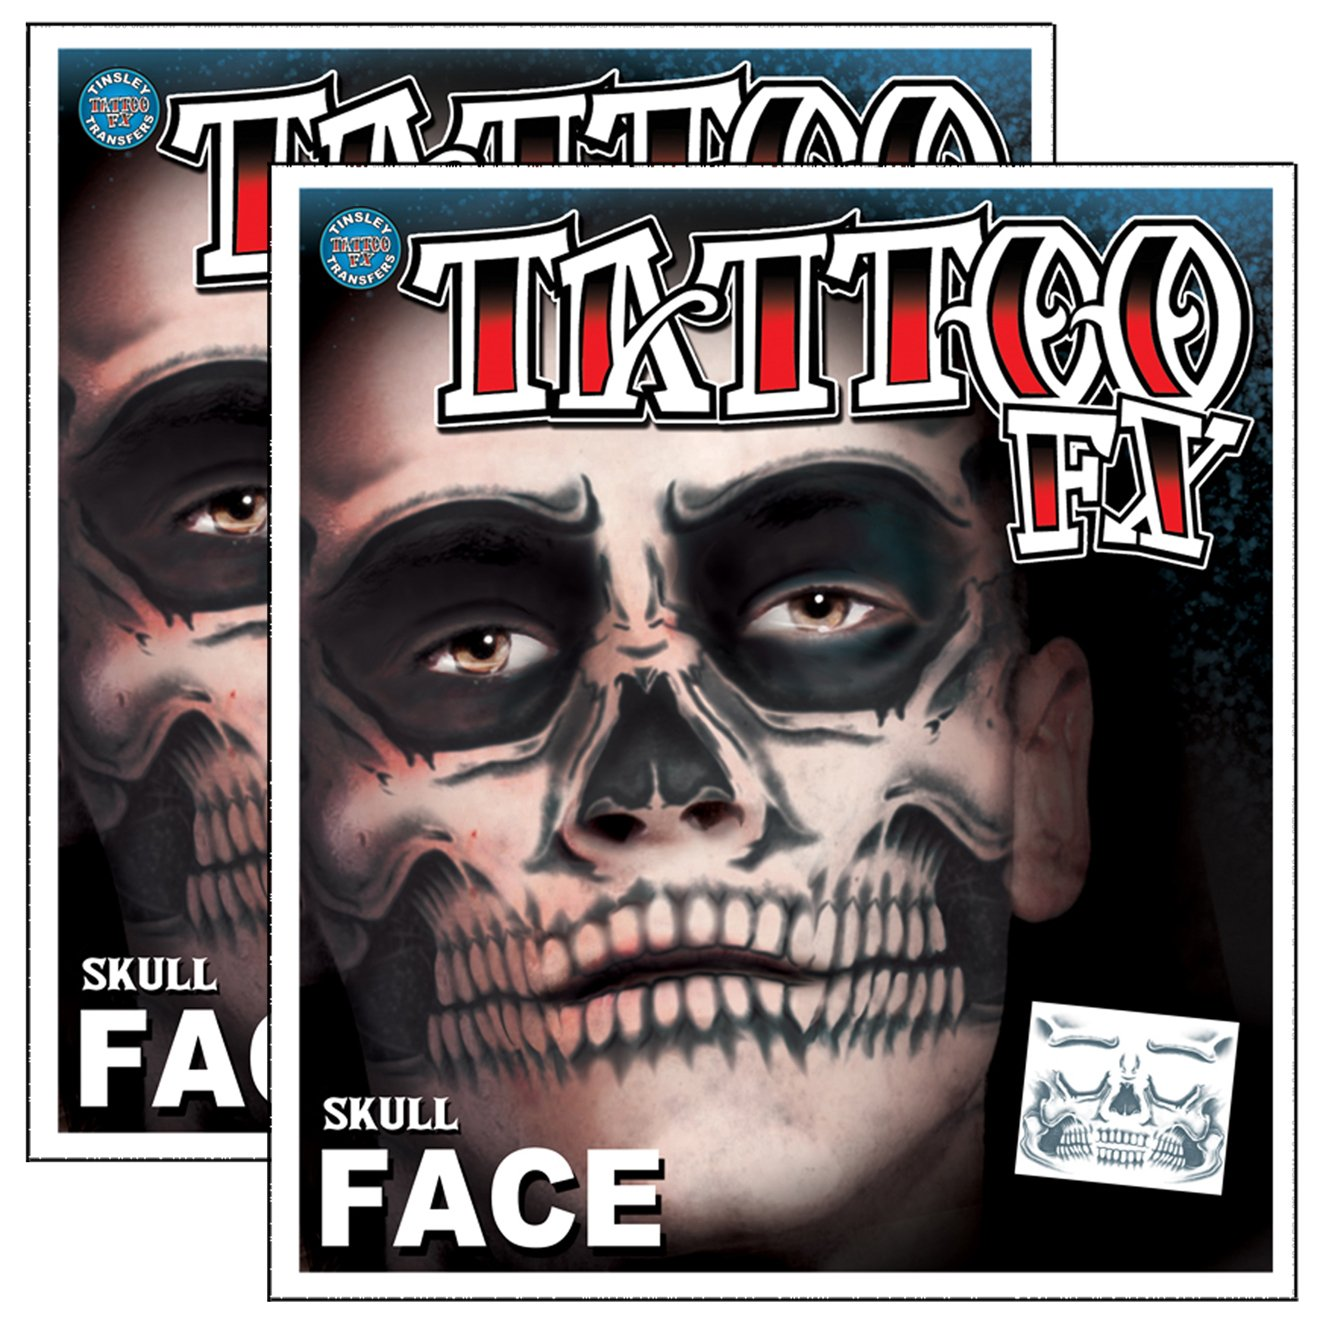 Day of the Dead Skeleton Skull Full Face Temporary Tattoo Kit - 2 Complete Kits Tinsley